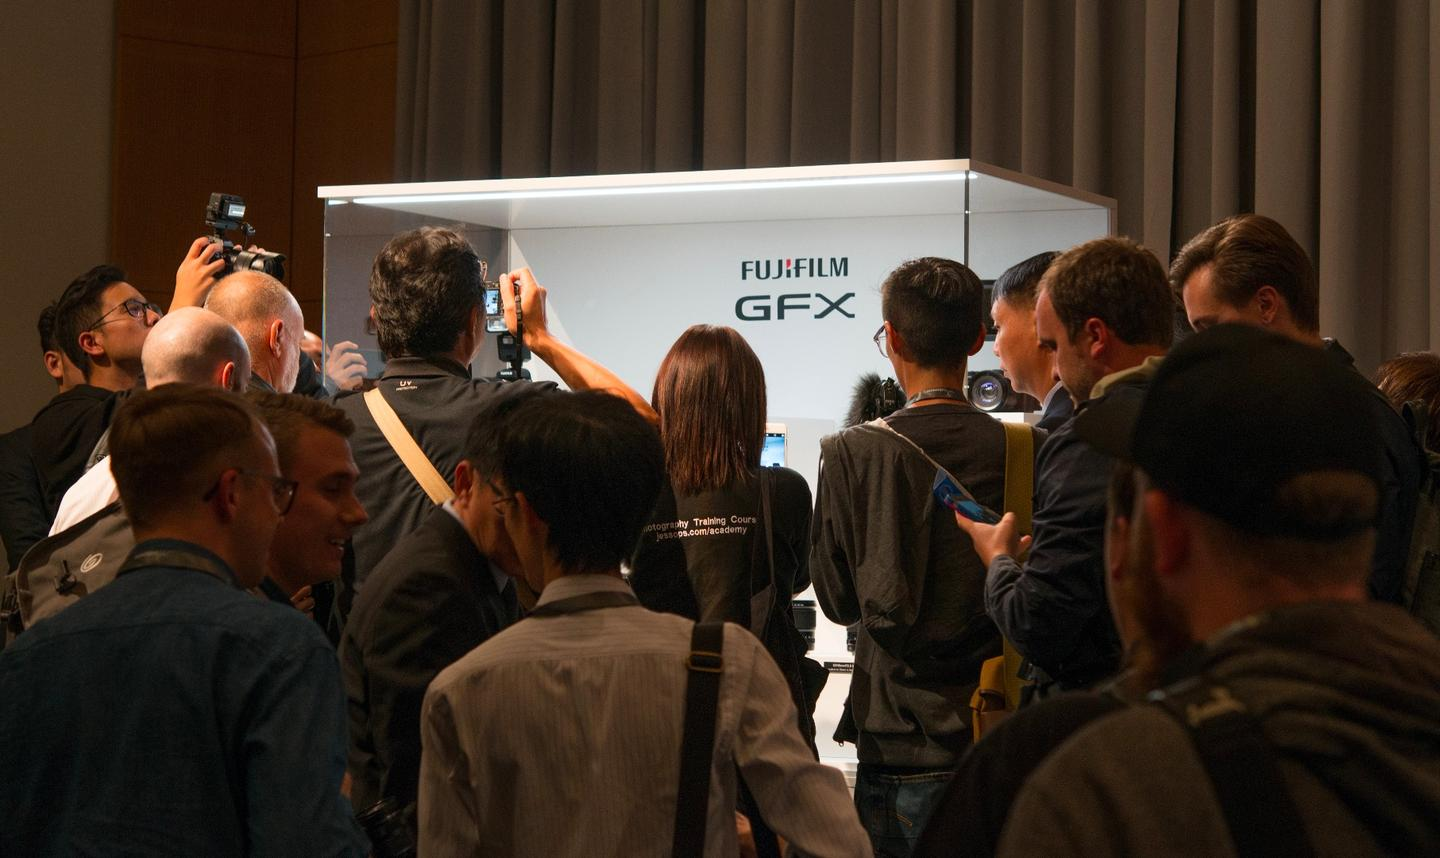 The Photokina scrum to see the Fujifilm GFX system